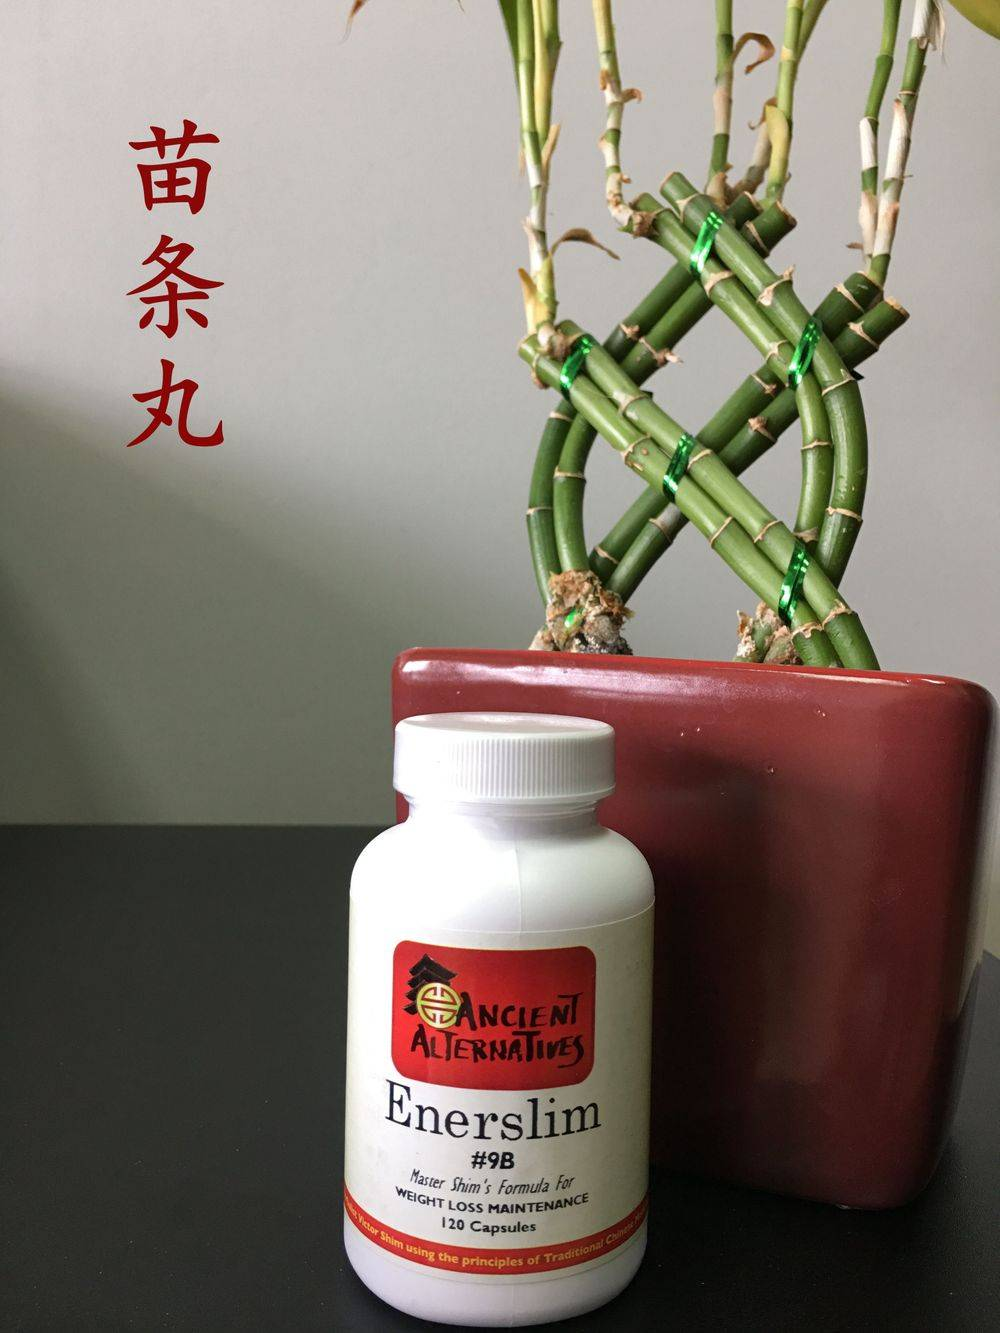 Increases metabolic rate. Promotes and maintains weight loss. (120 capsules)